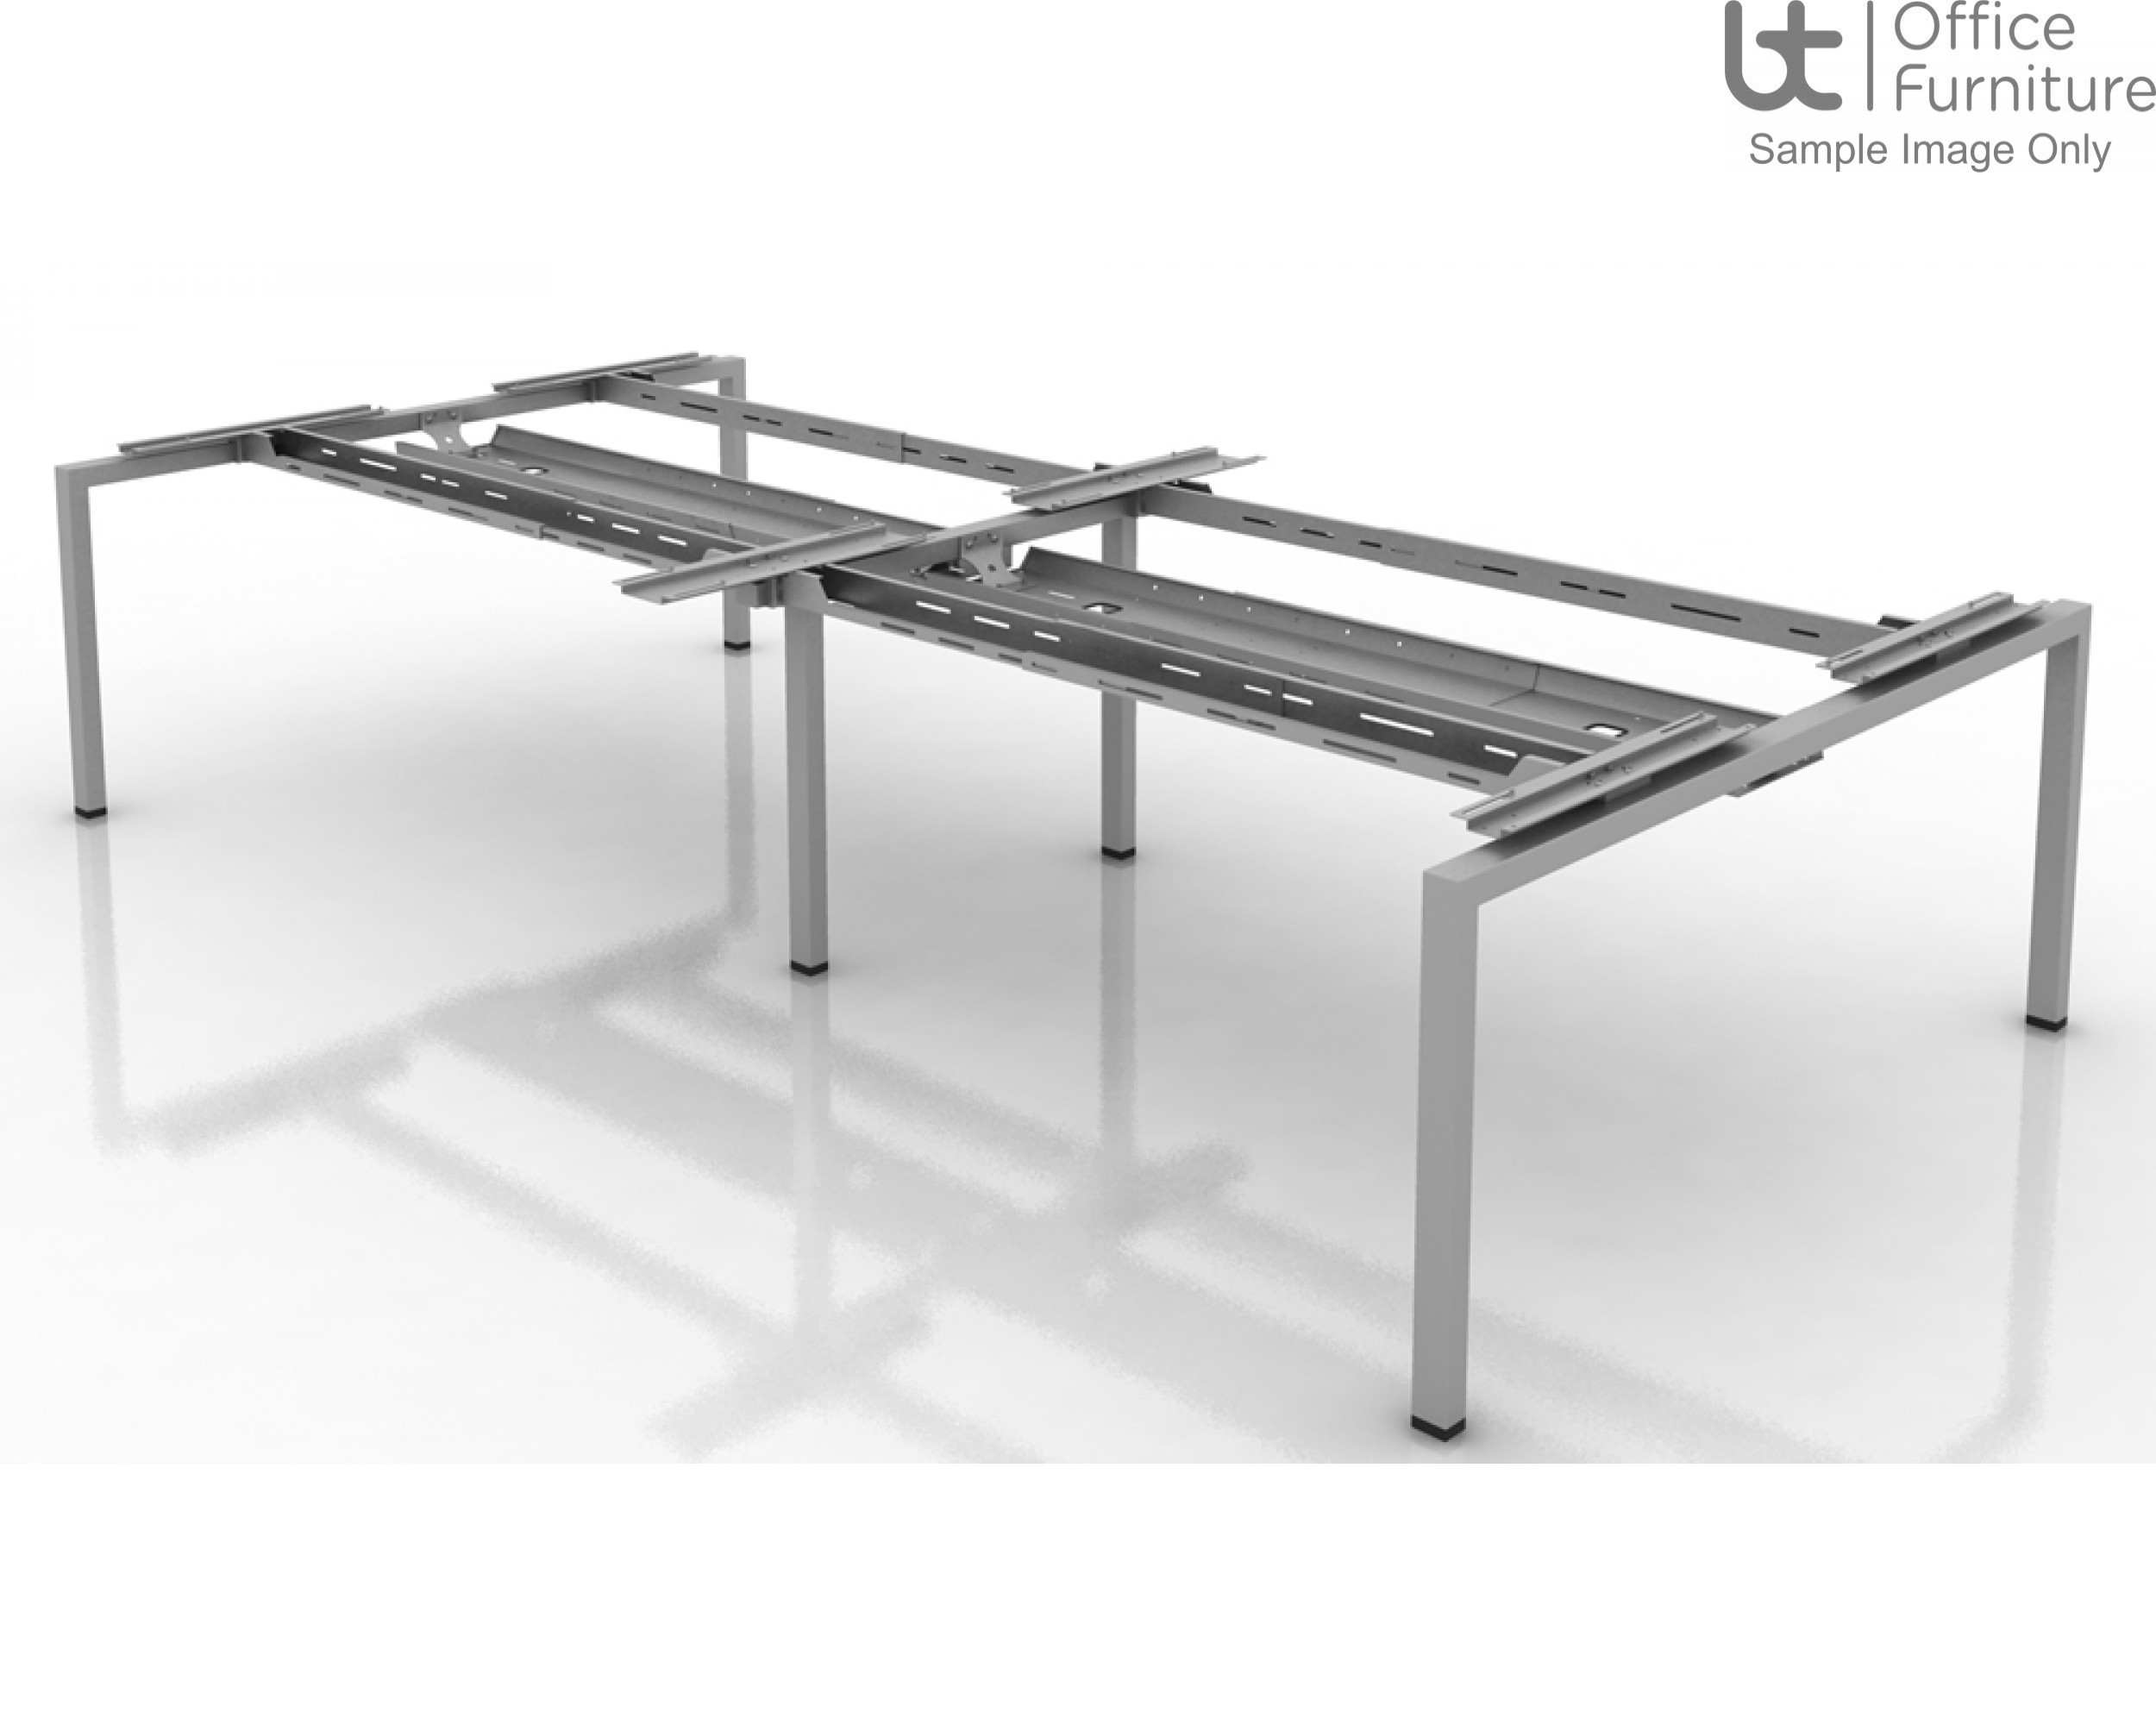 Soho2 Back To Back Add-On Starter Module Desk 1250mm Deep Inc Telescopic Cable Tray